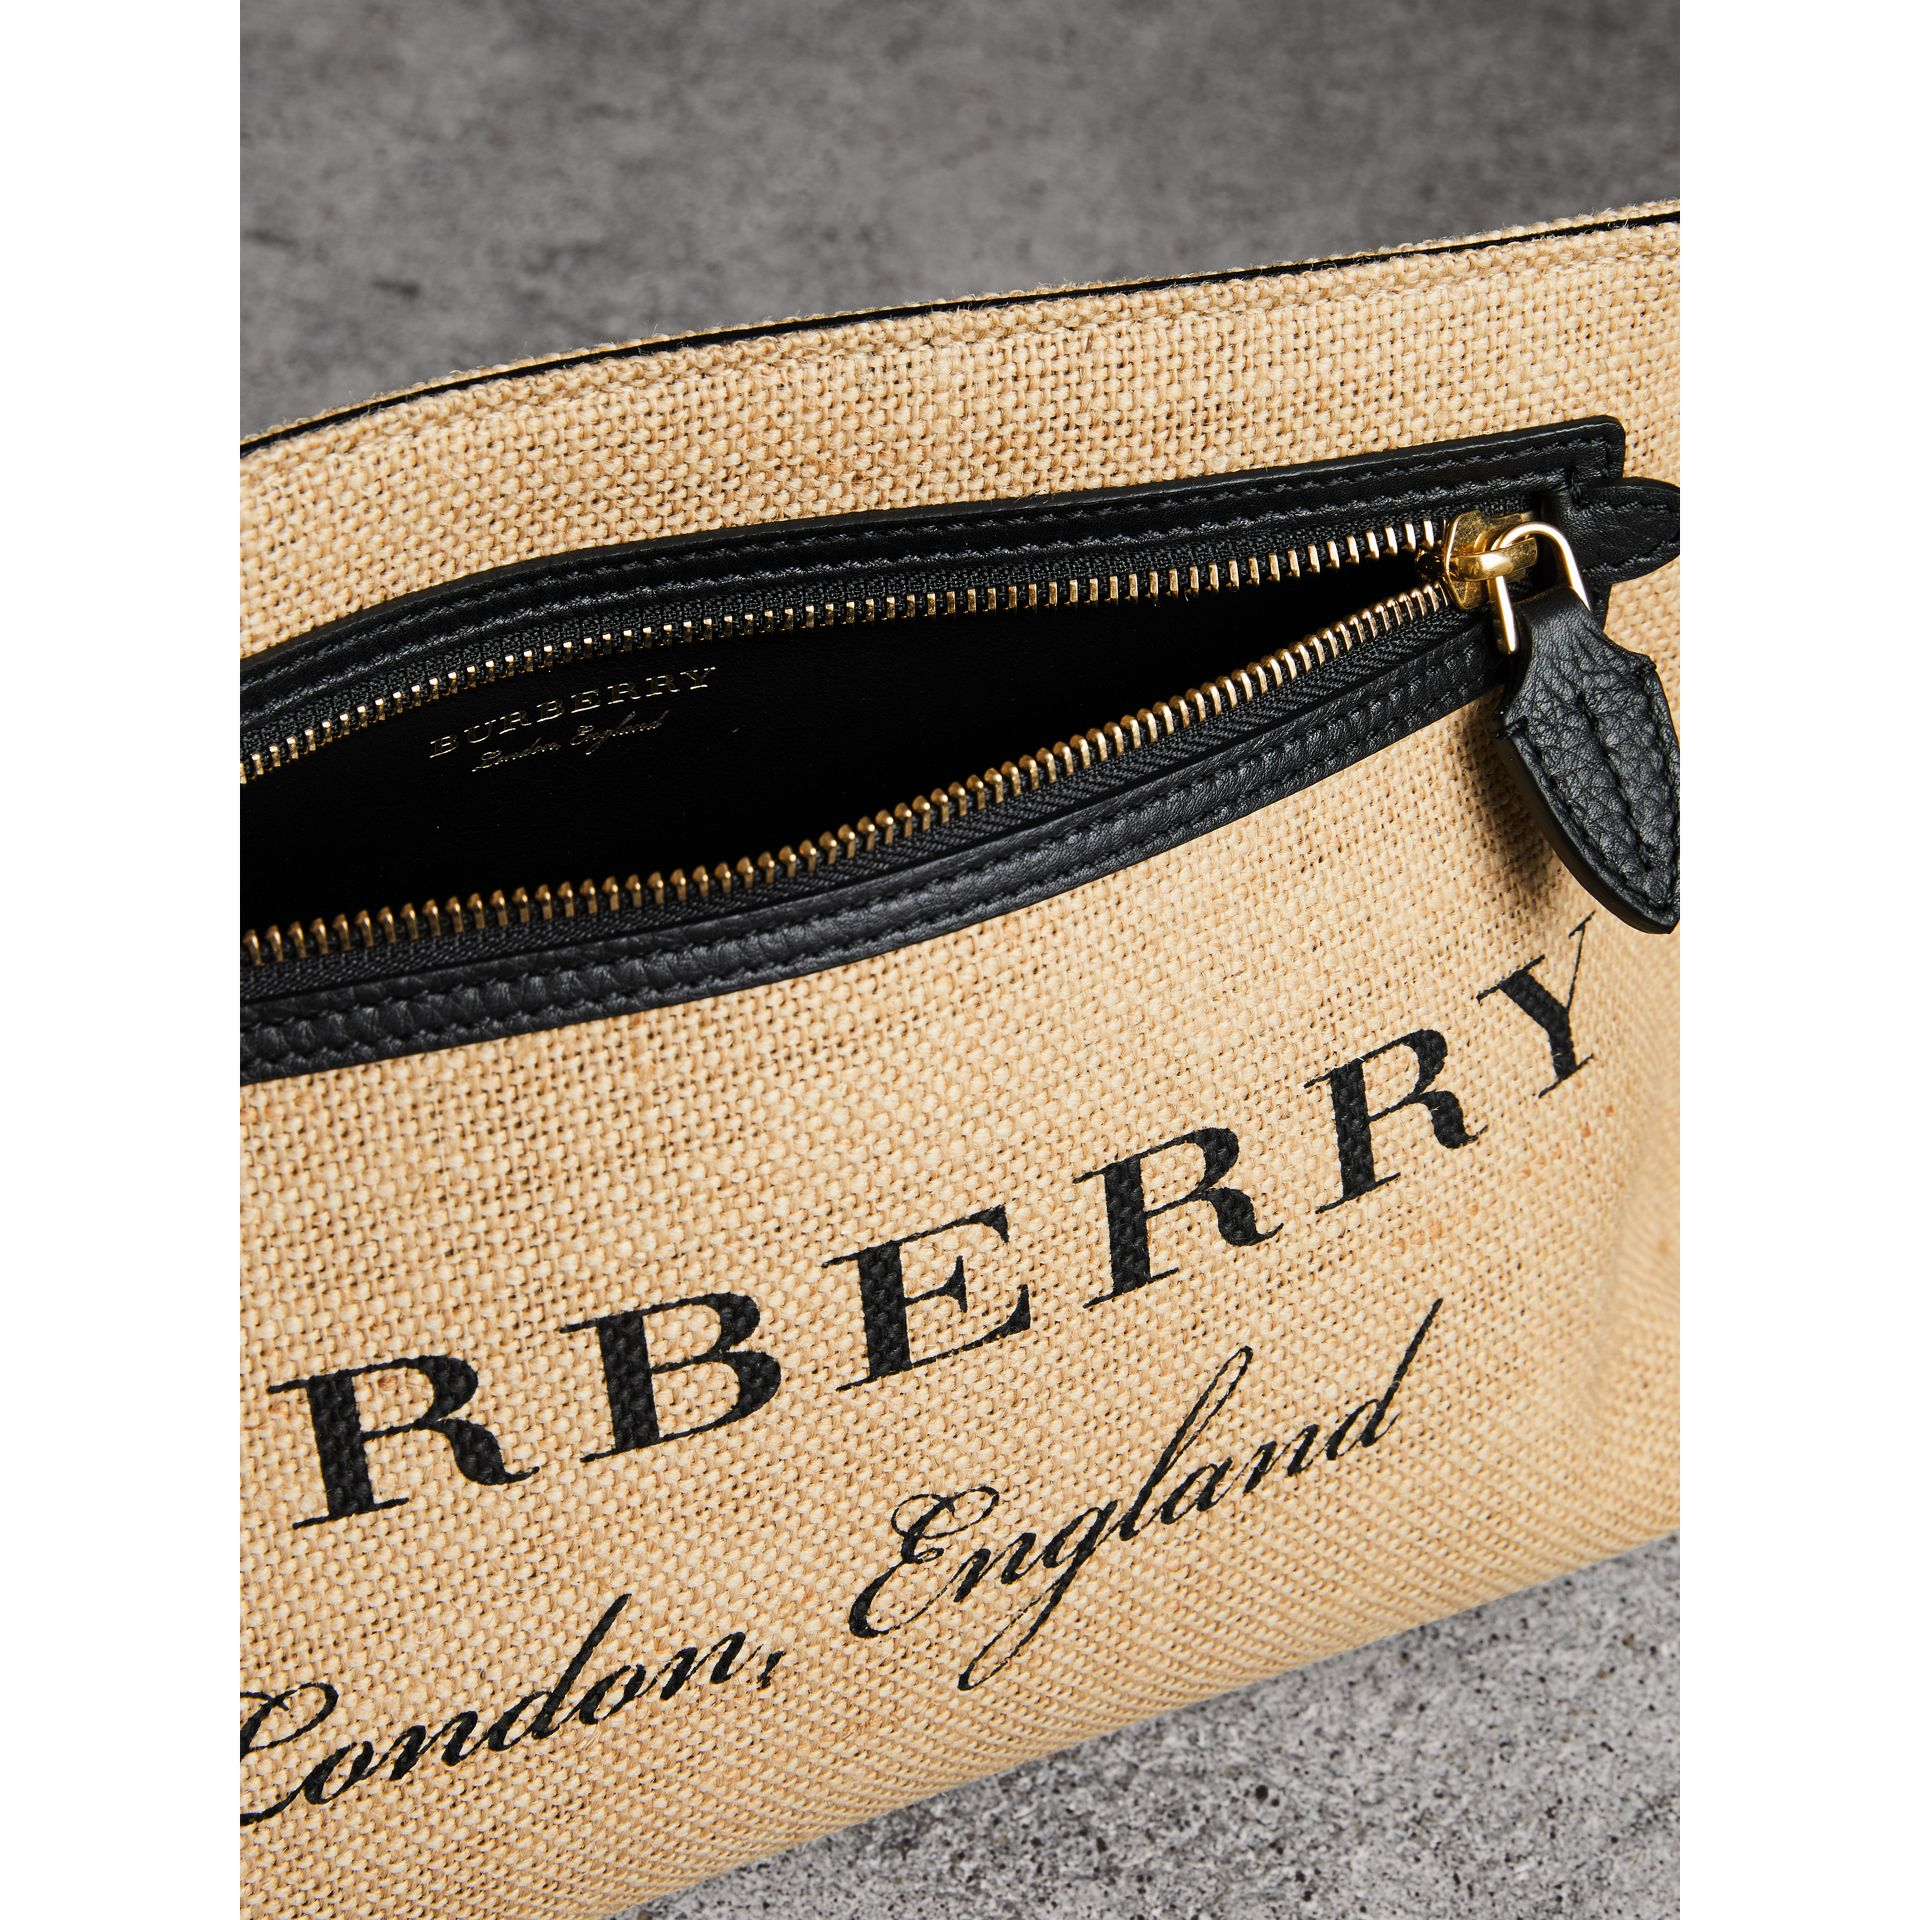 Logo Print Jute Wristlet Clutch in Black - Women | Burberry United States - gallery image 5